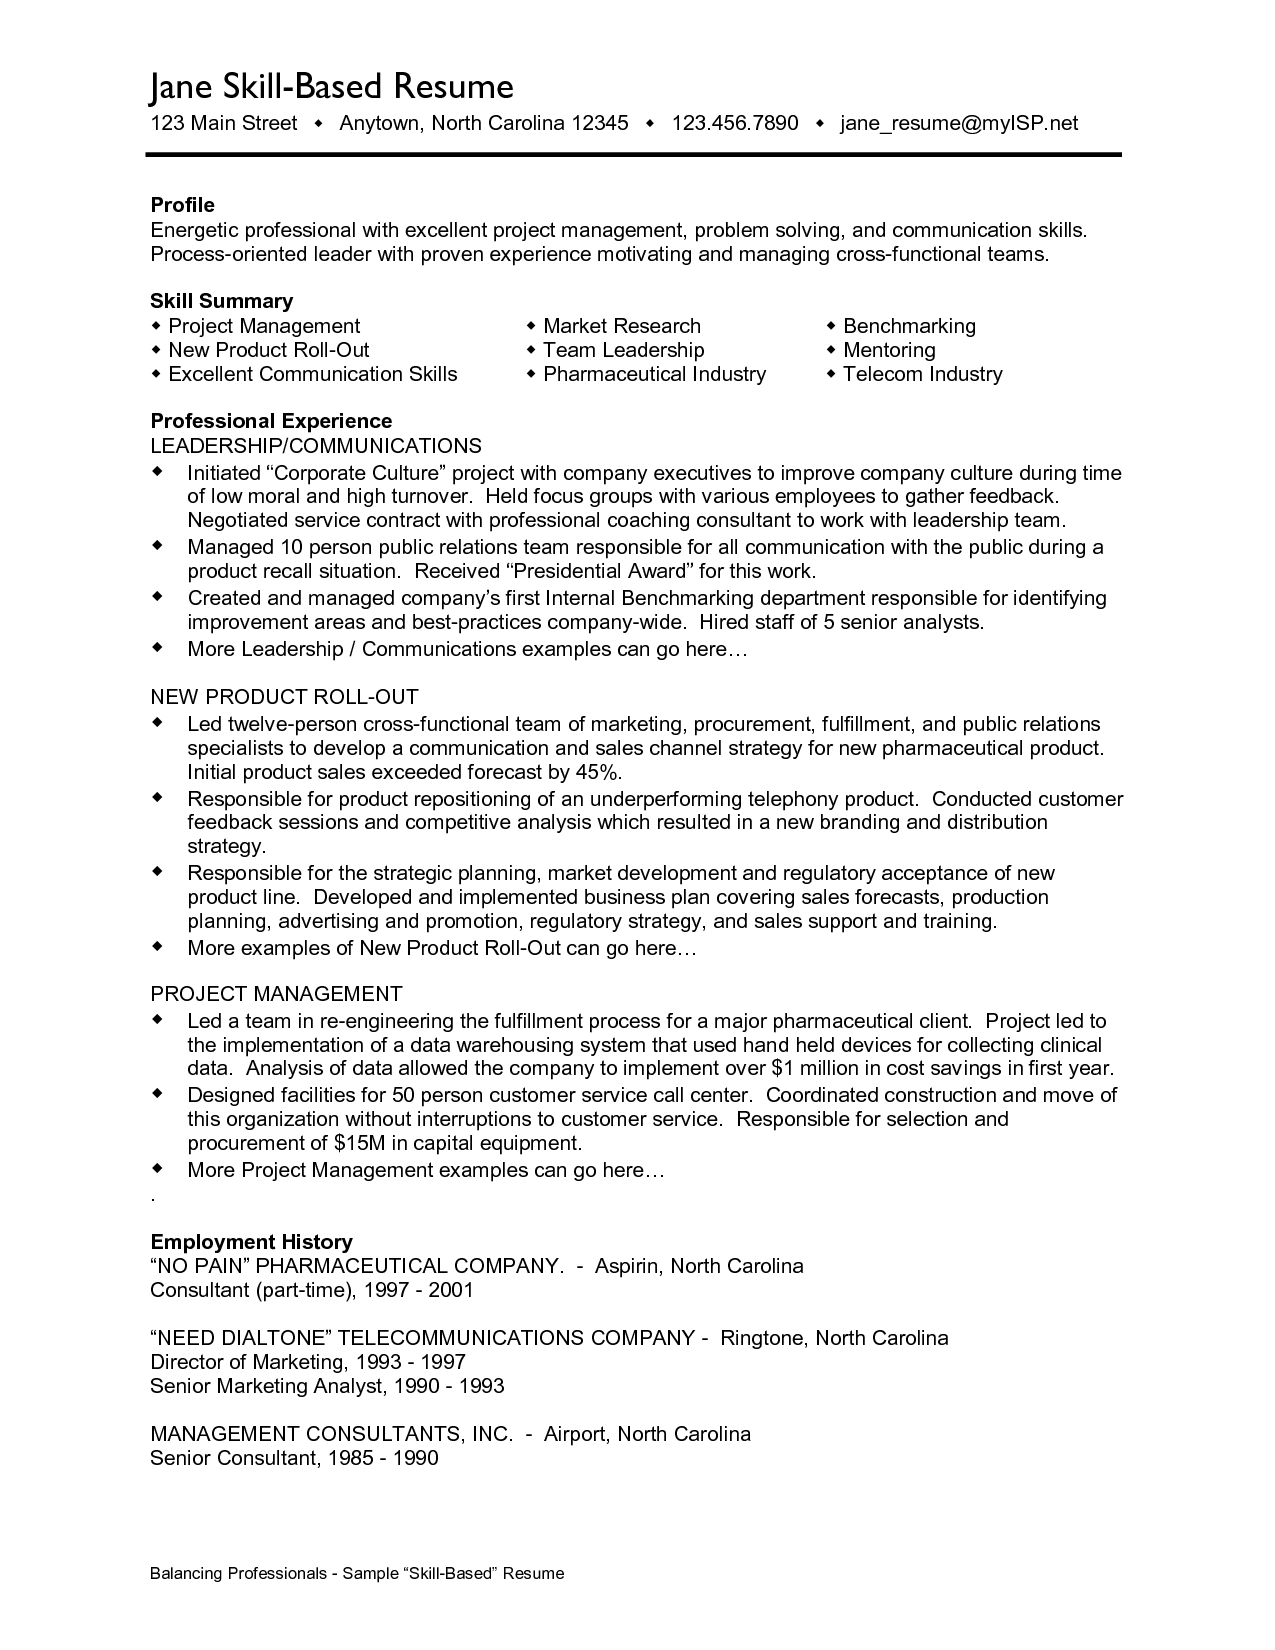 Excellent Communication Skills Resume Example Job Resume Communication Skills Http Resumecareer